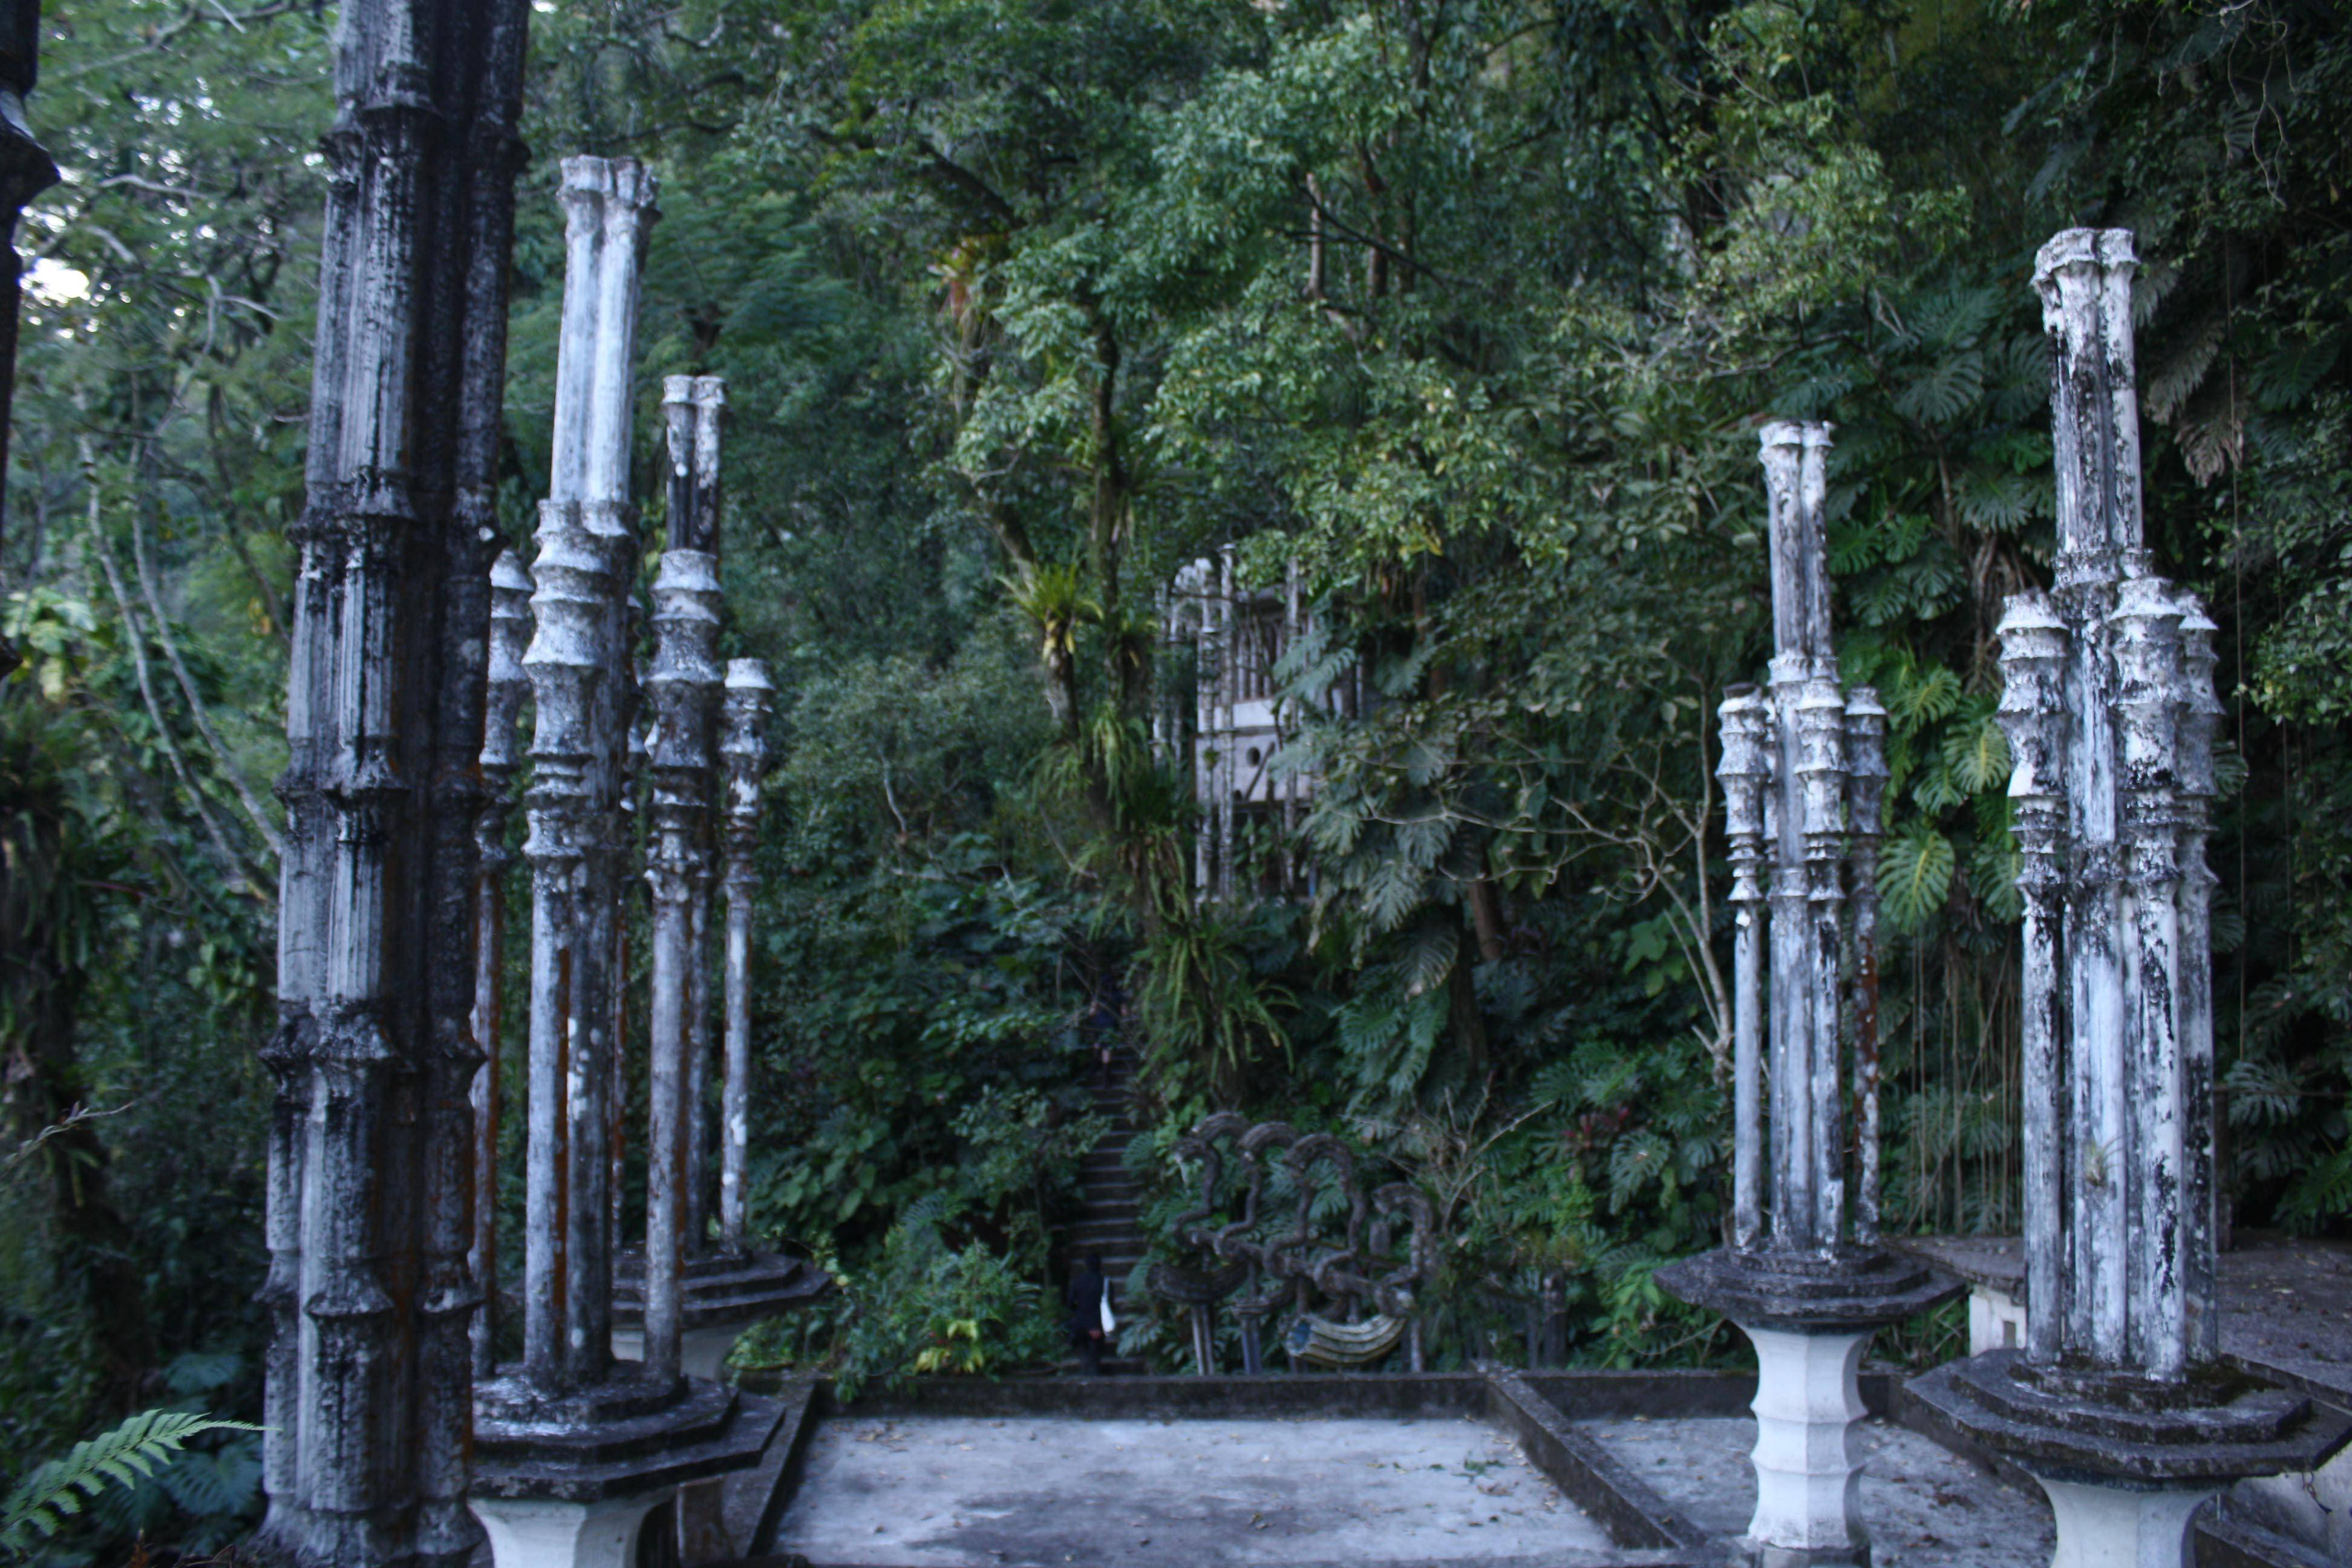 With park guides' help, visitors can access the most remote corners of Las Pozas.